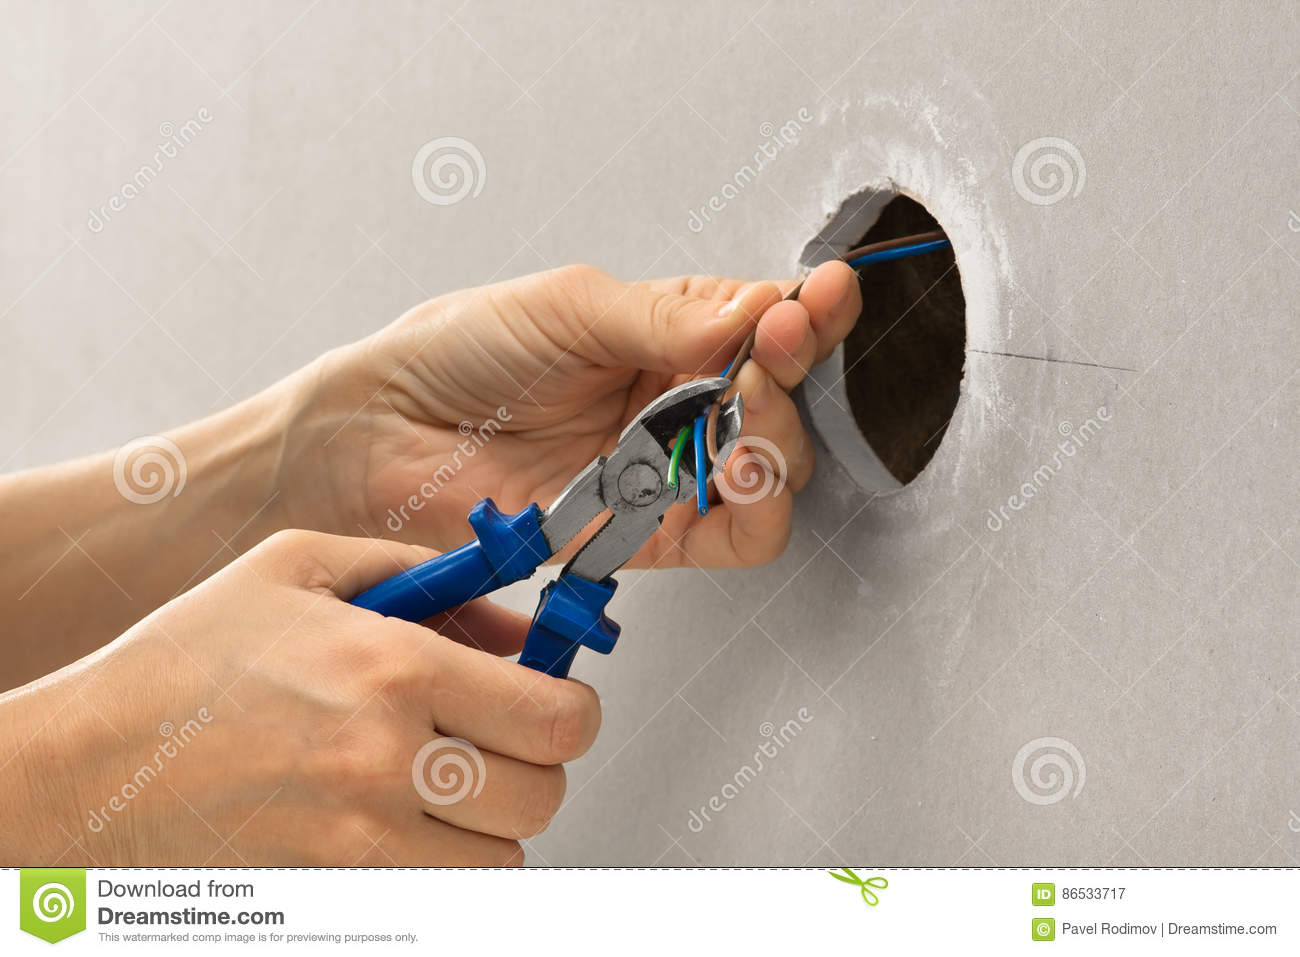 Hands of electrician with wire cutter